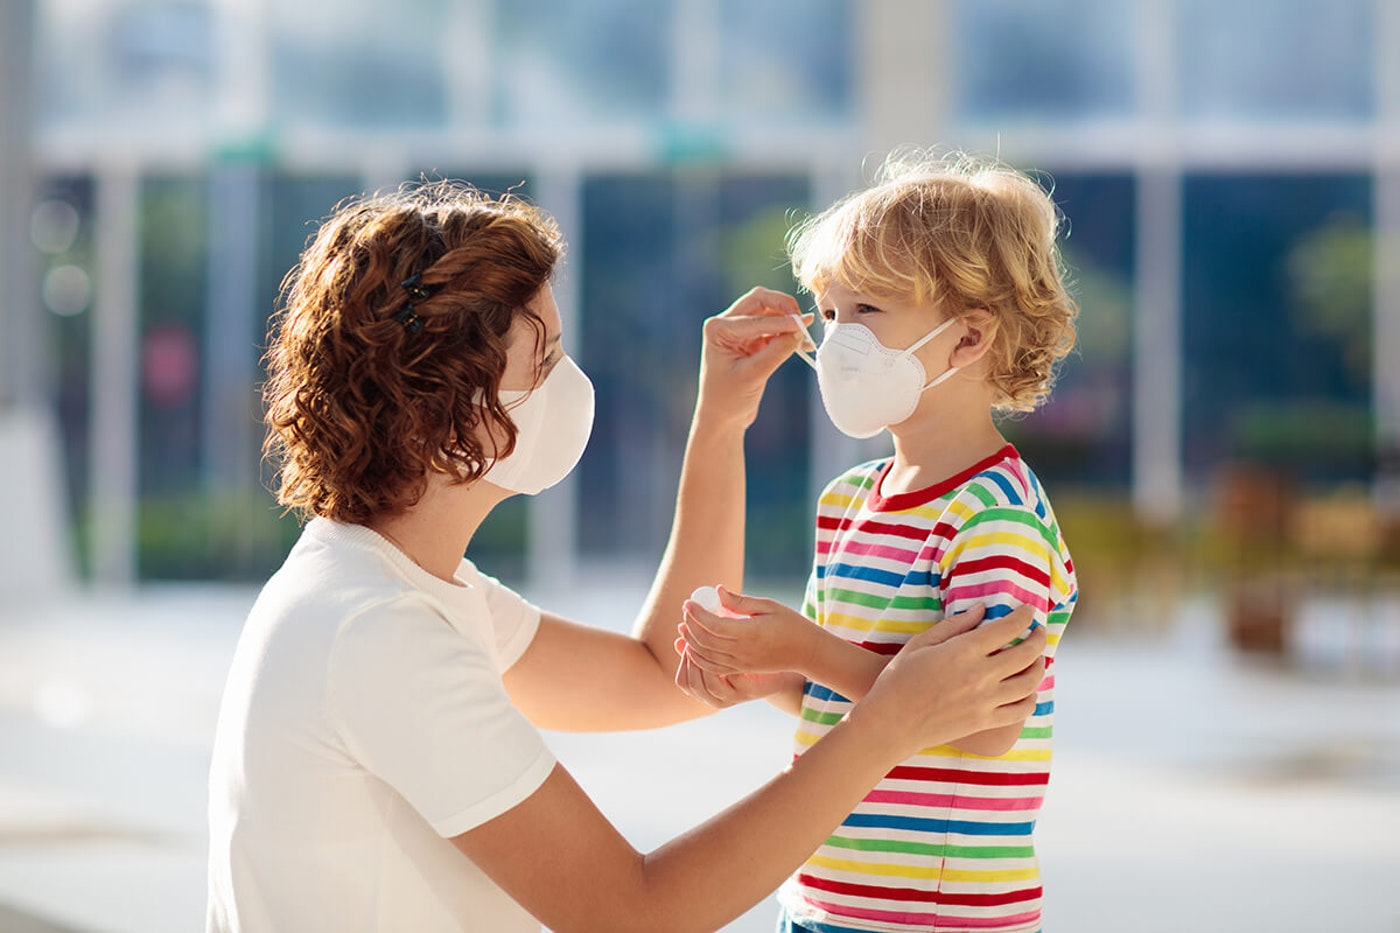 woman wearing masks kneeling and adjusting mask on young boy's face